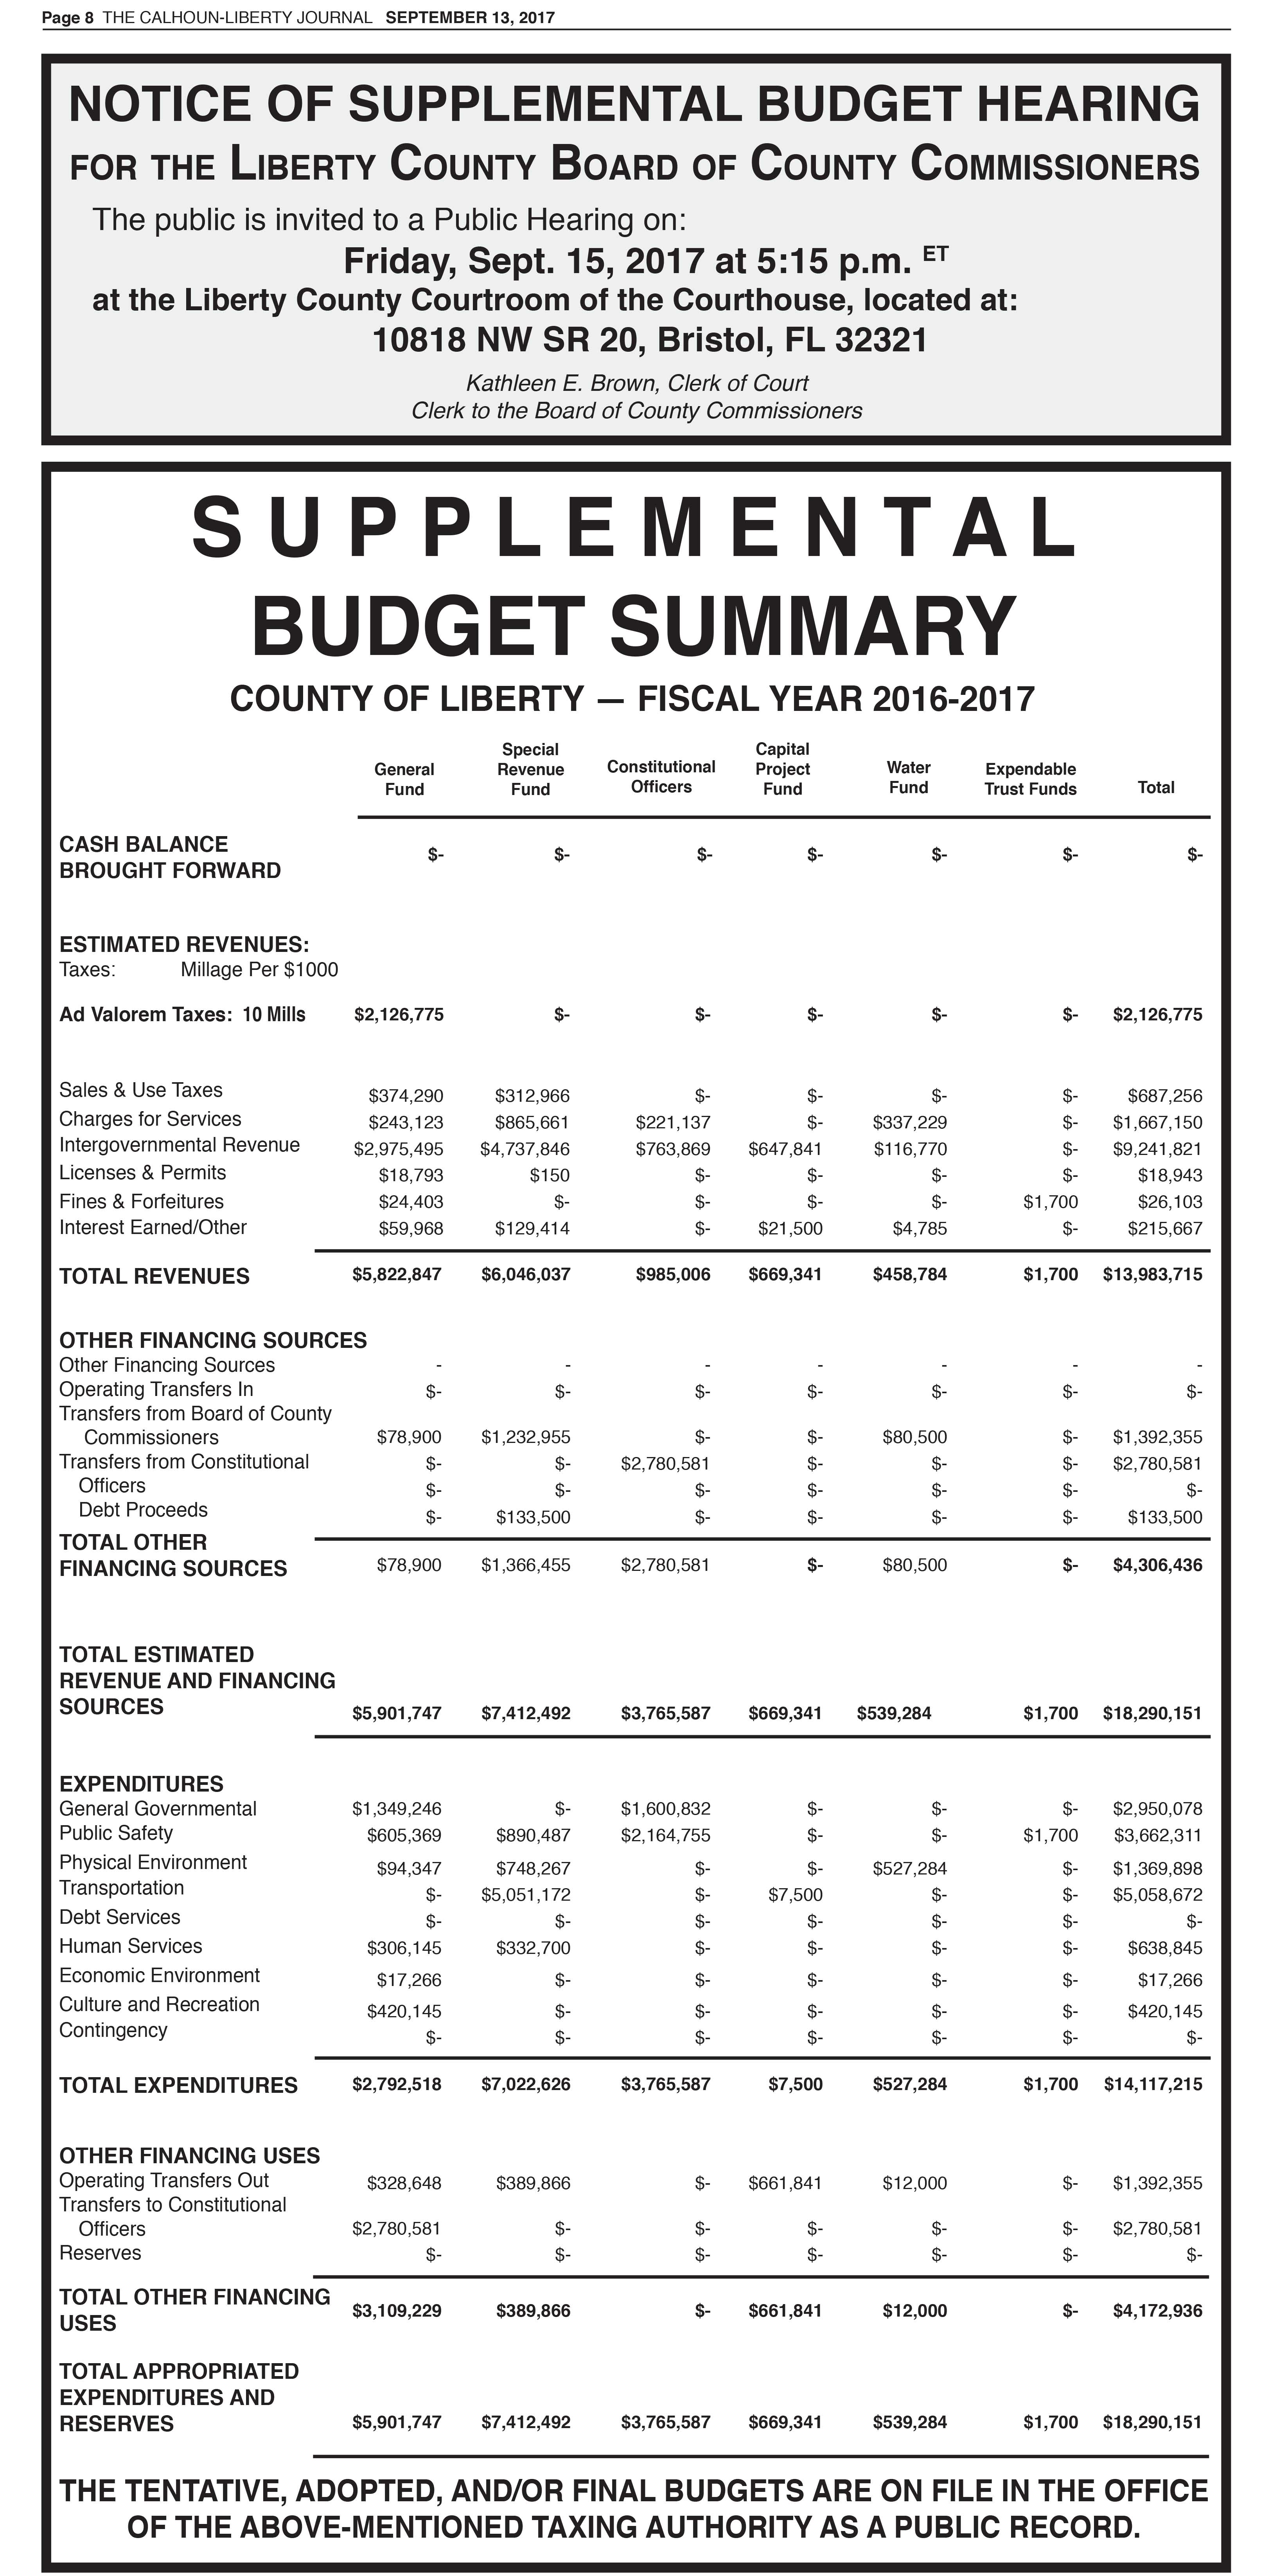 LCBCC - Notice of Supplemental Budget Hearing & Supplemental Budget FY 2016-2017